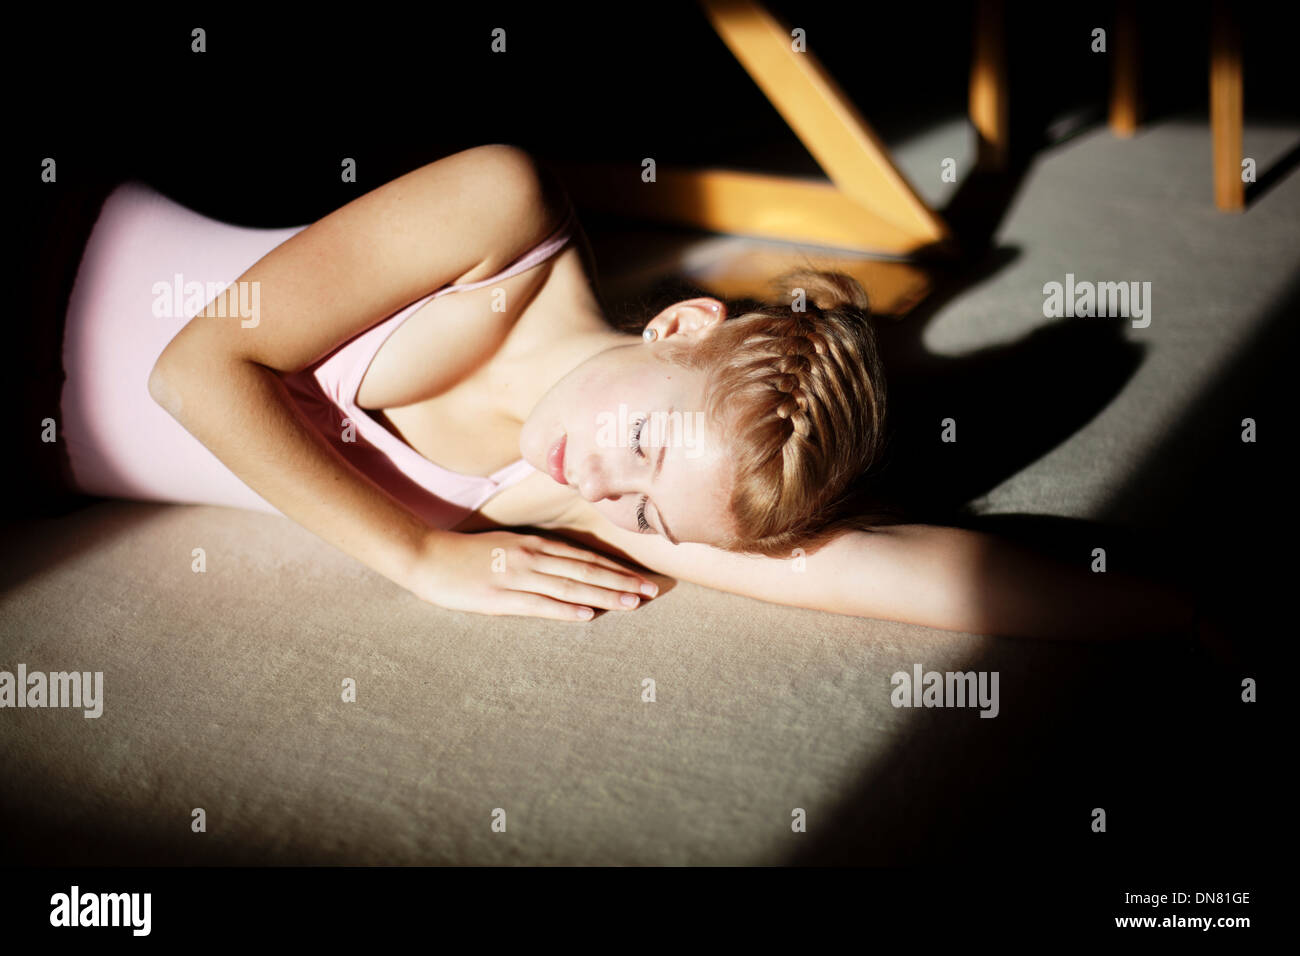 Young woman with closed eyes lying on the floor, portrait - Stock Image